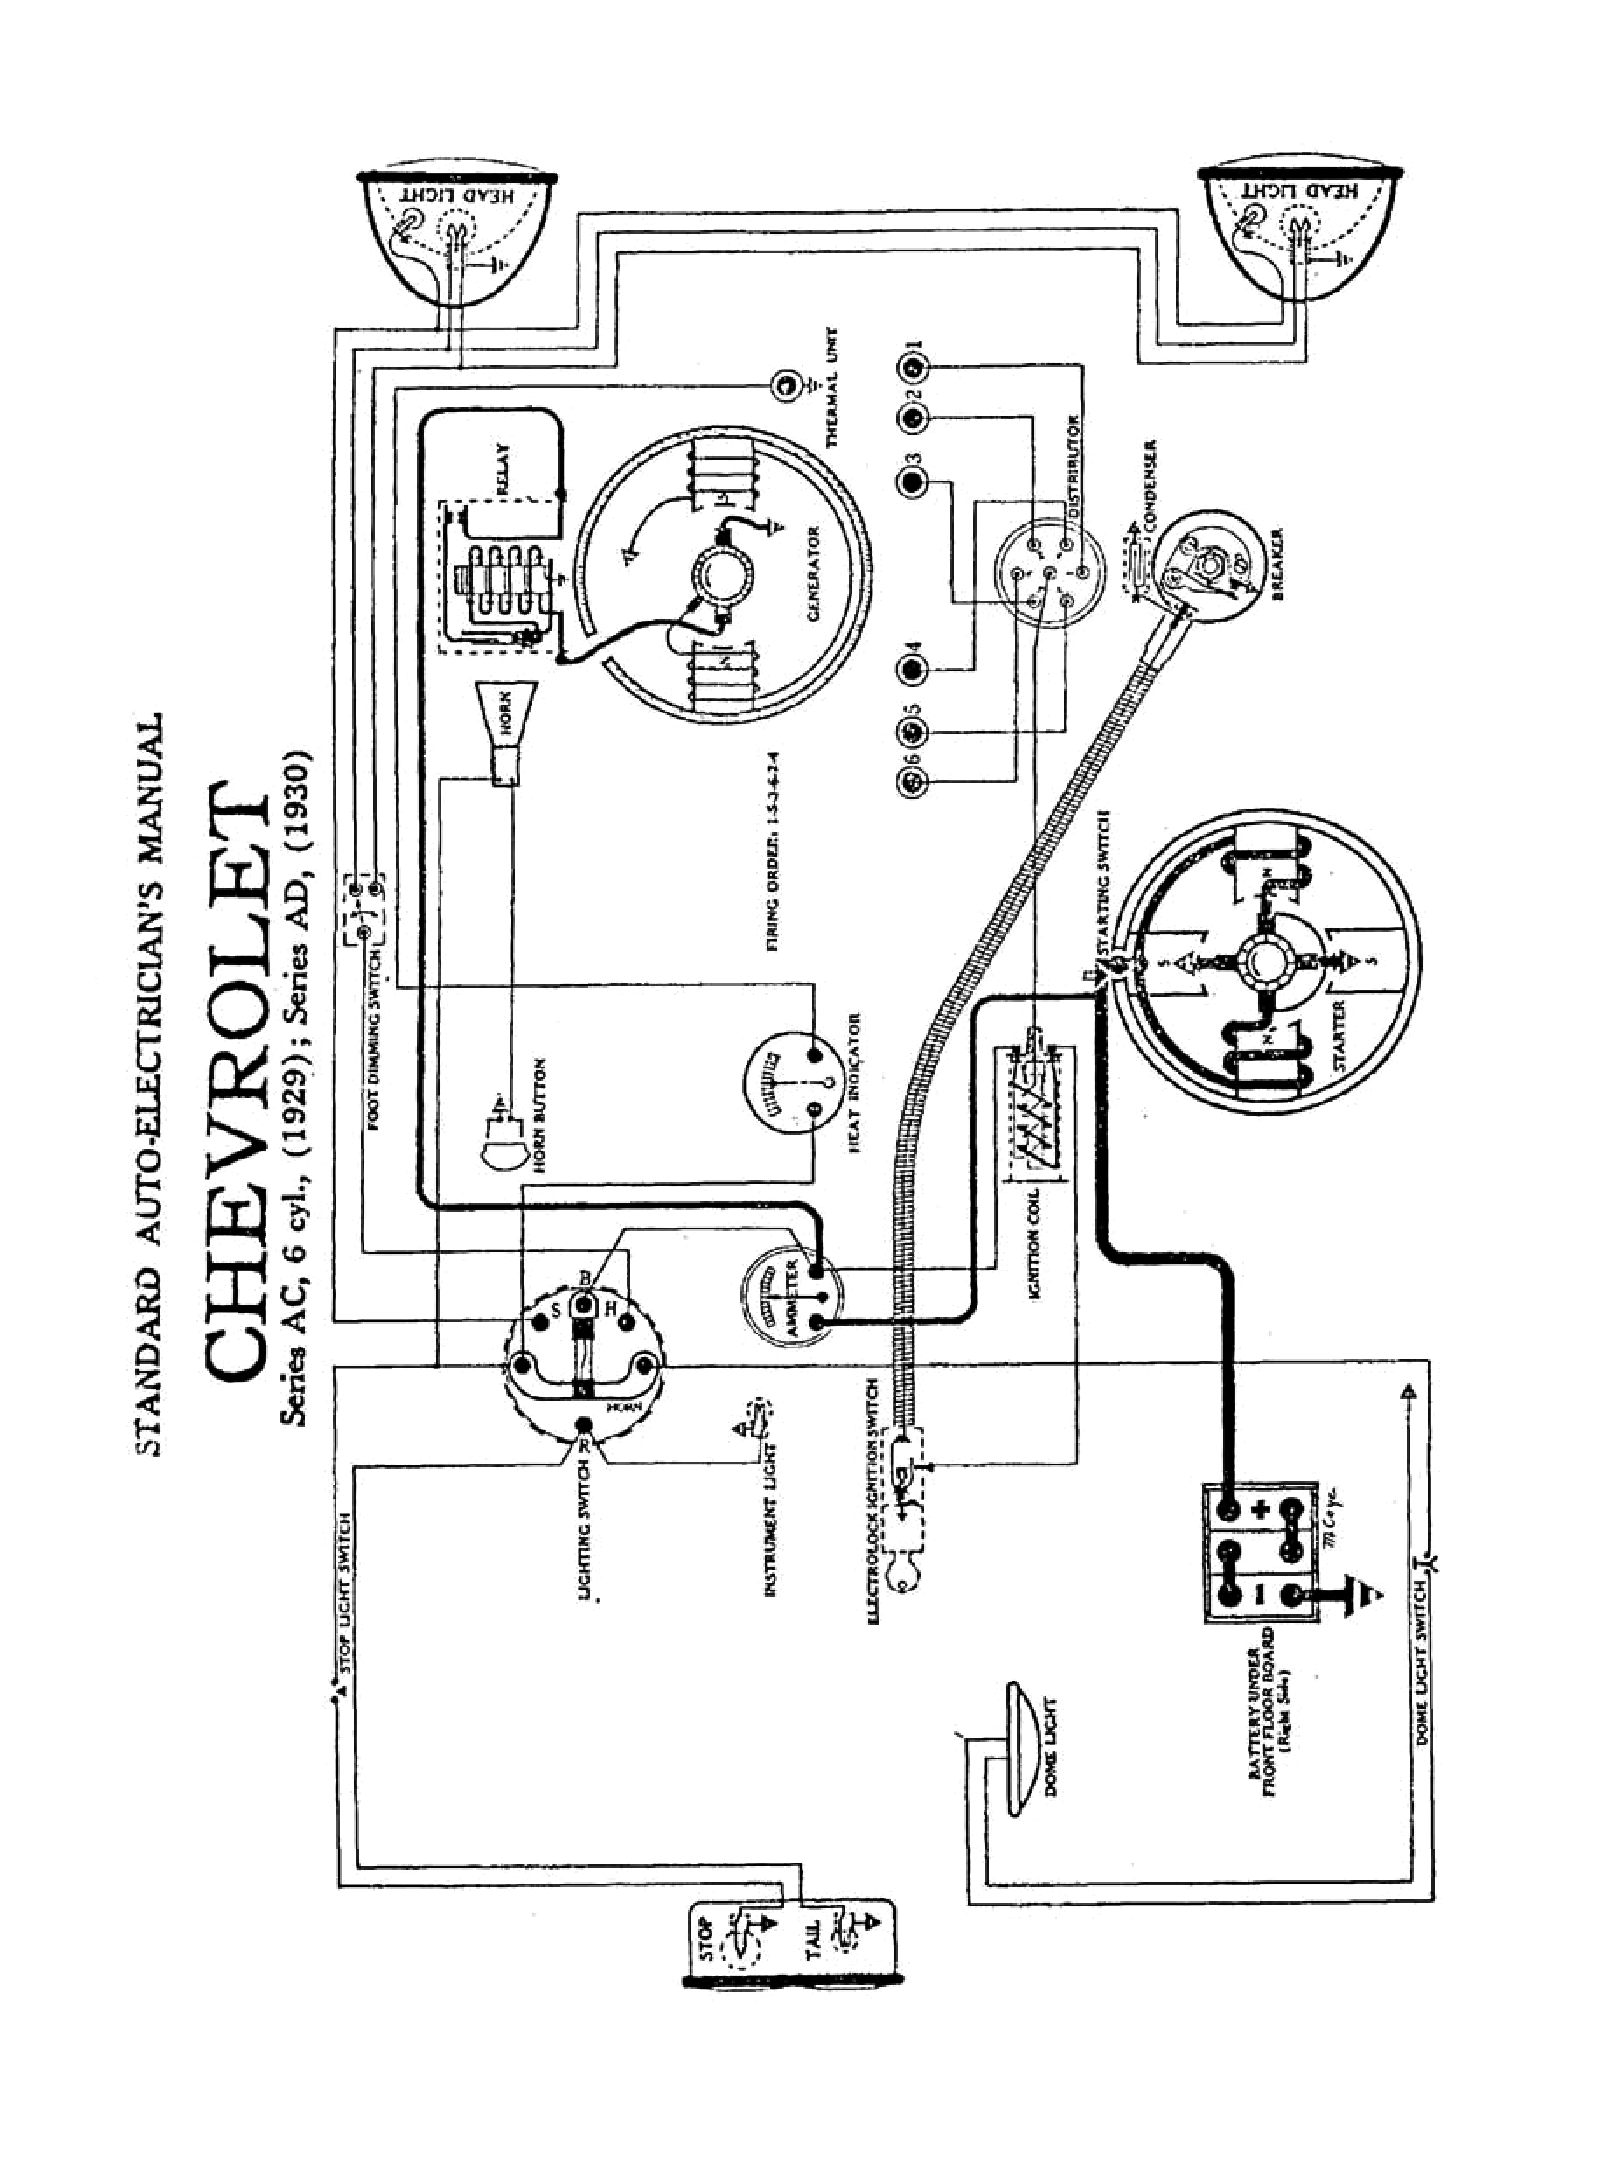 Chevy Wiring Diagrams 07 Silverado Remote Start 1930 Series Ad Model 1931 Lighting Ignition